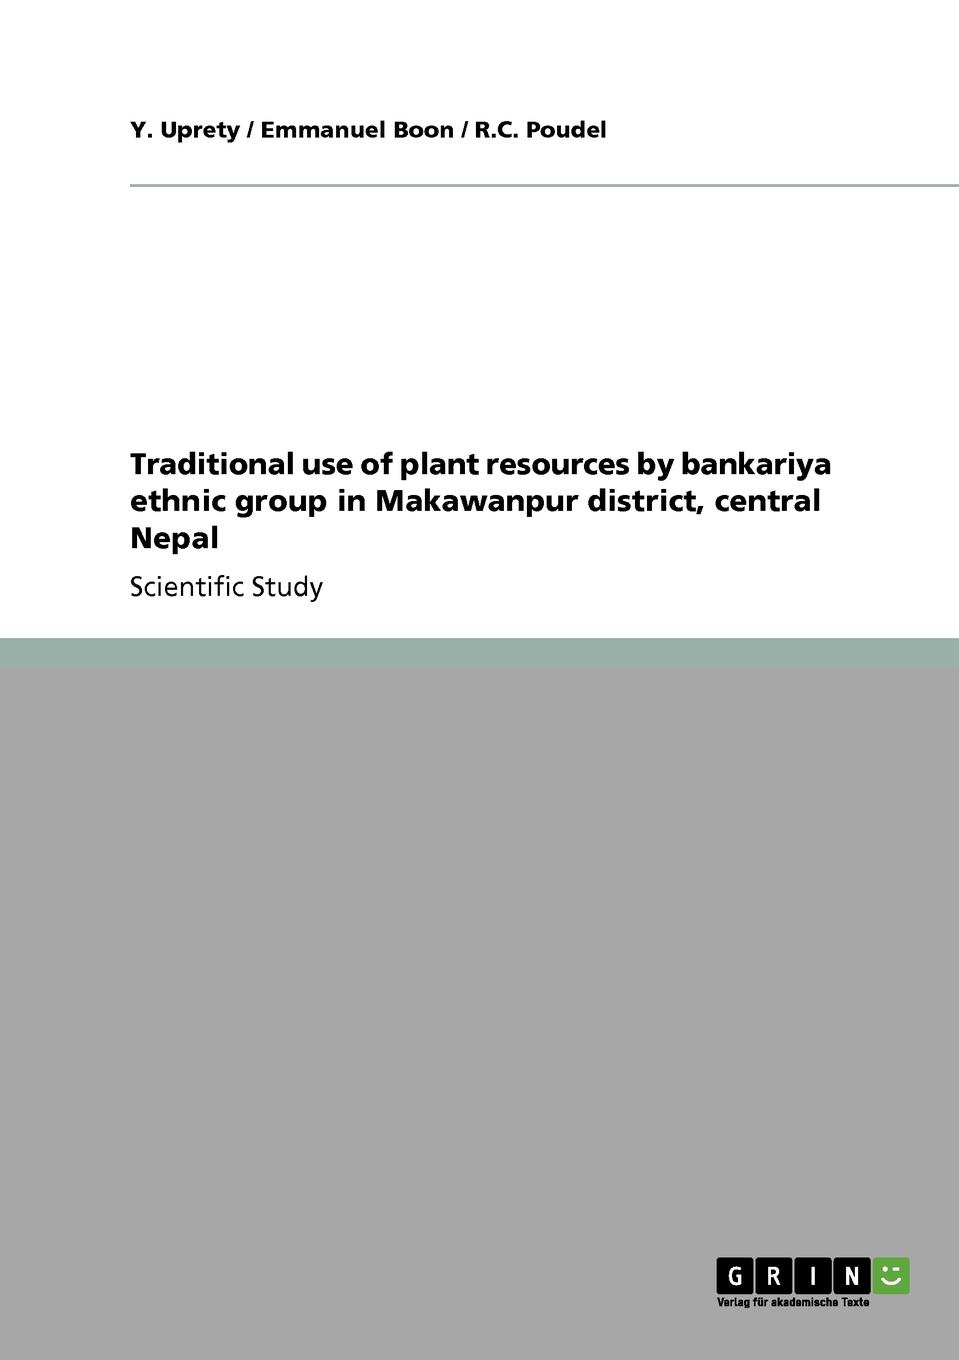 Emmanuel Boon, Y. Uprety, R.C. Poudel Traditional use of plant resources by bankariya ethnic group in Makawanpur district, central Nepal недорго, оригинальная цена